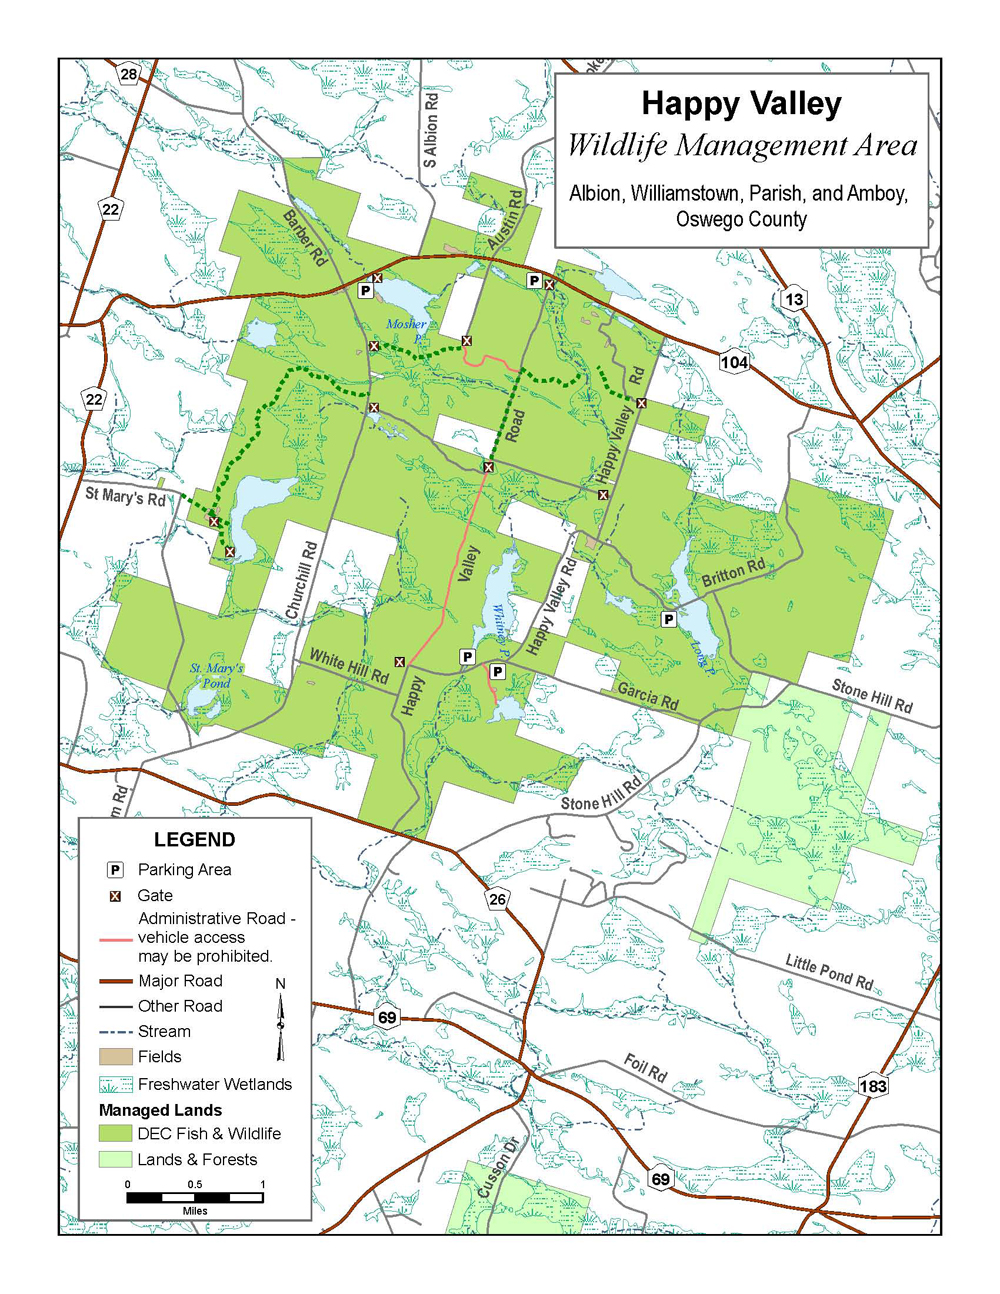 Happy Valley Wildlife Management Area Map